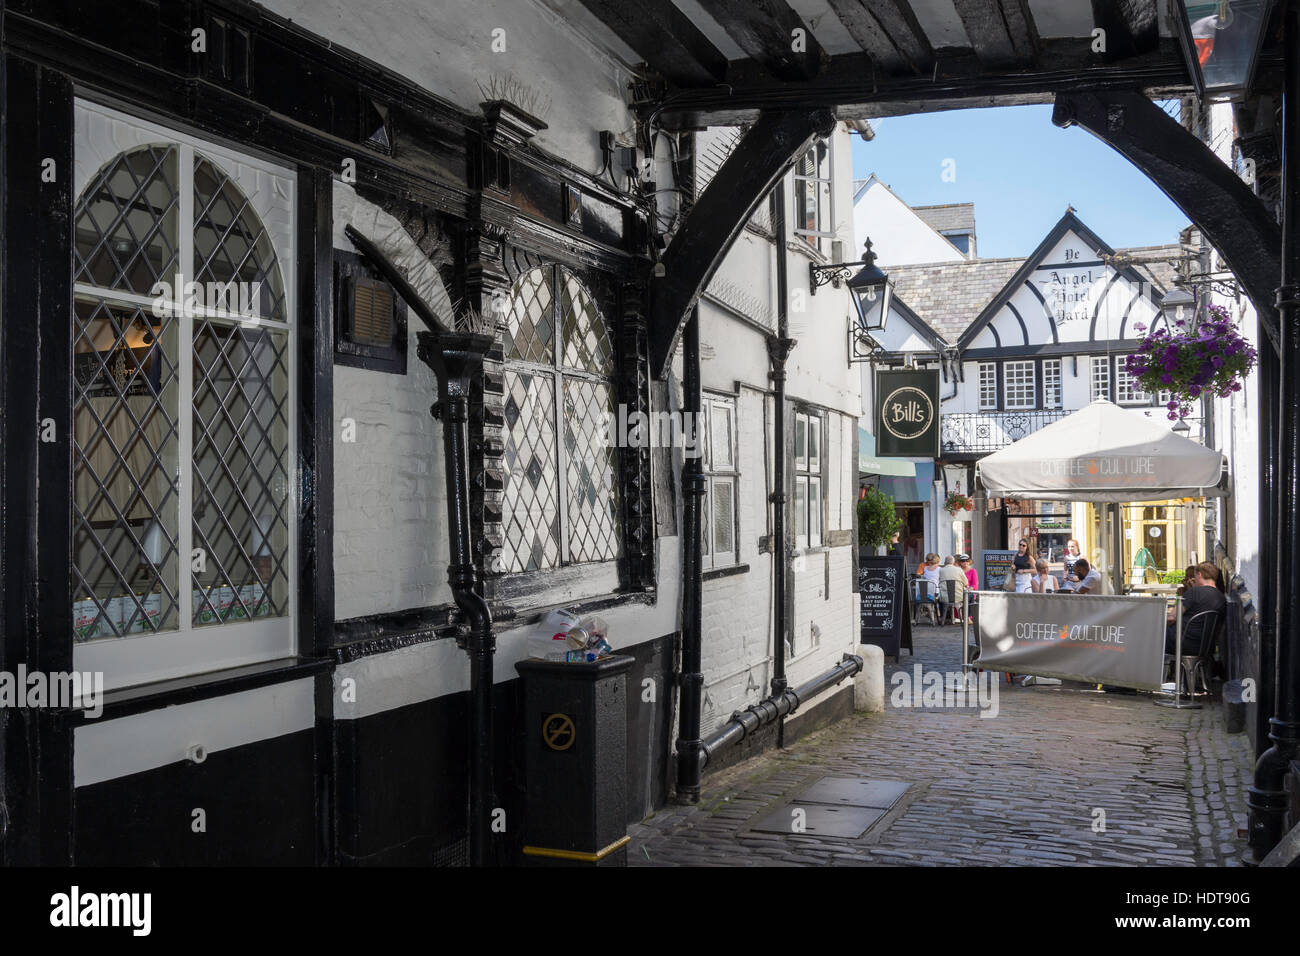 Courtyard of 16th century Ye Angel Hotel, High Street, Guildford, Surrey, England, United Kingdom - Stock Image